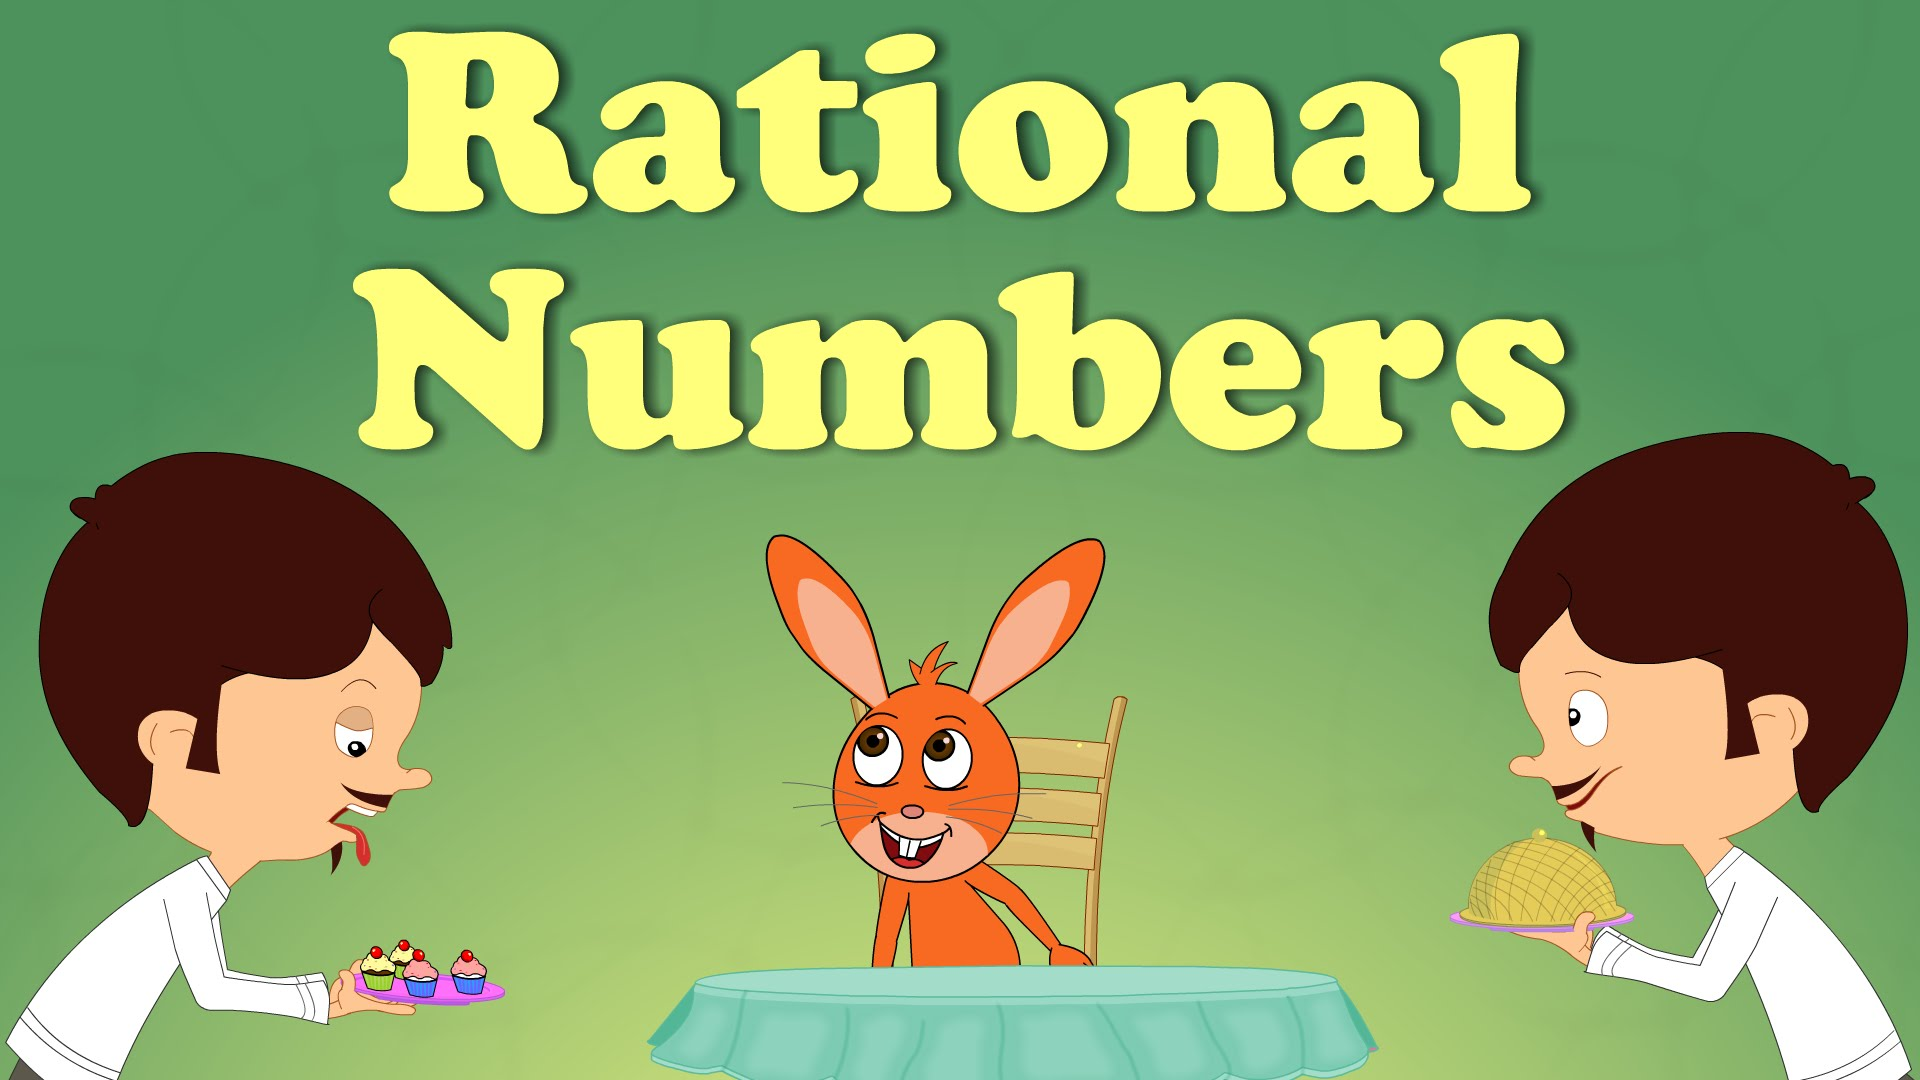 Number clipart rational number Numbers Rational YouTube